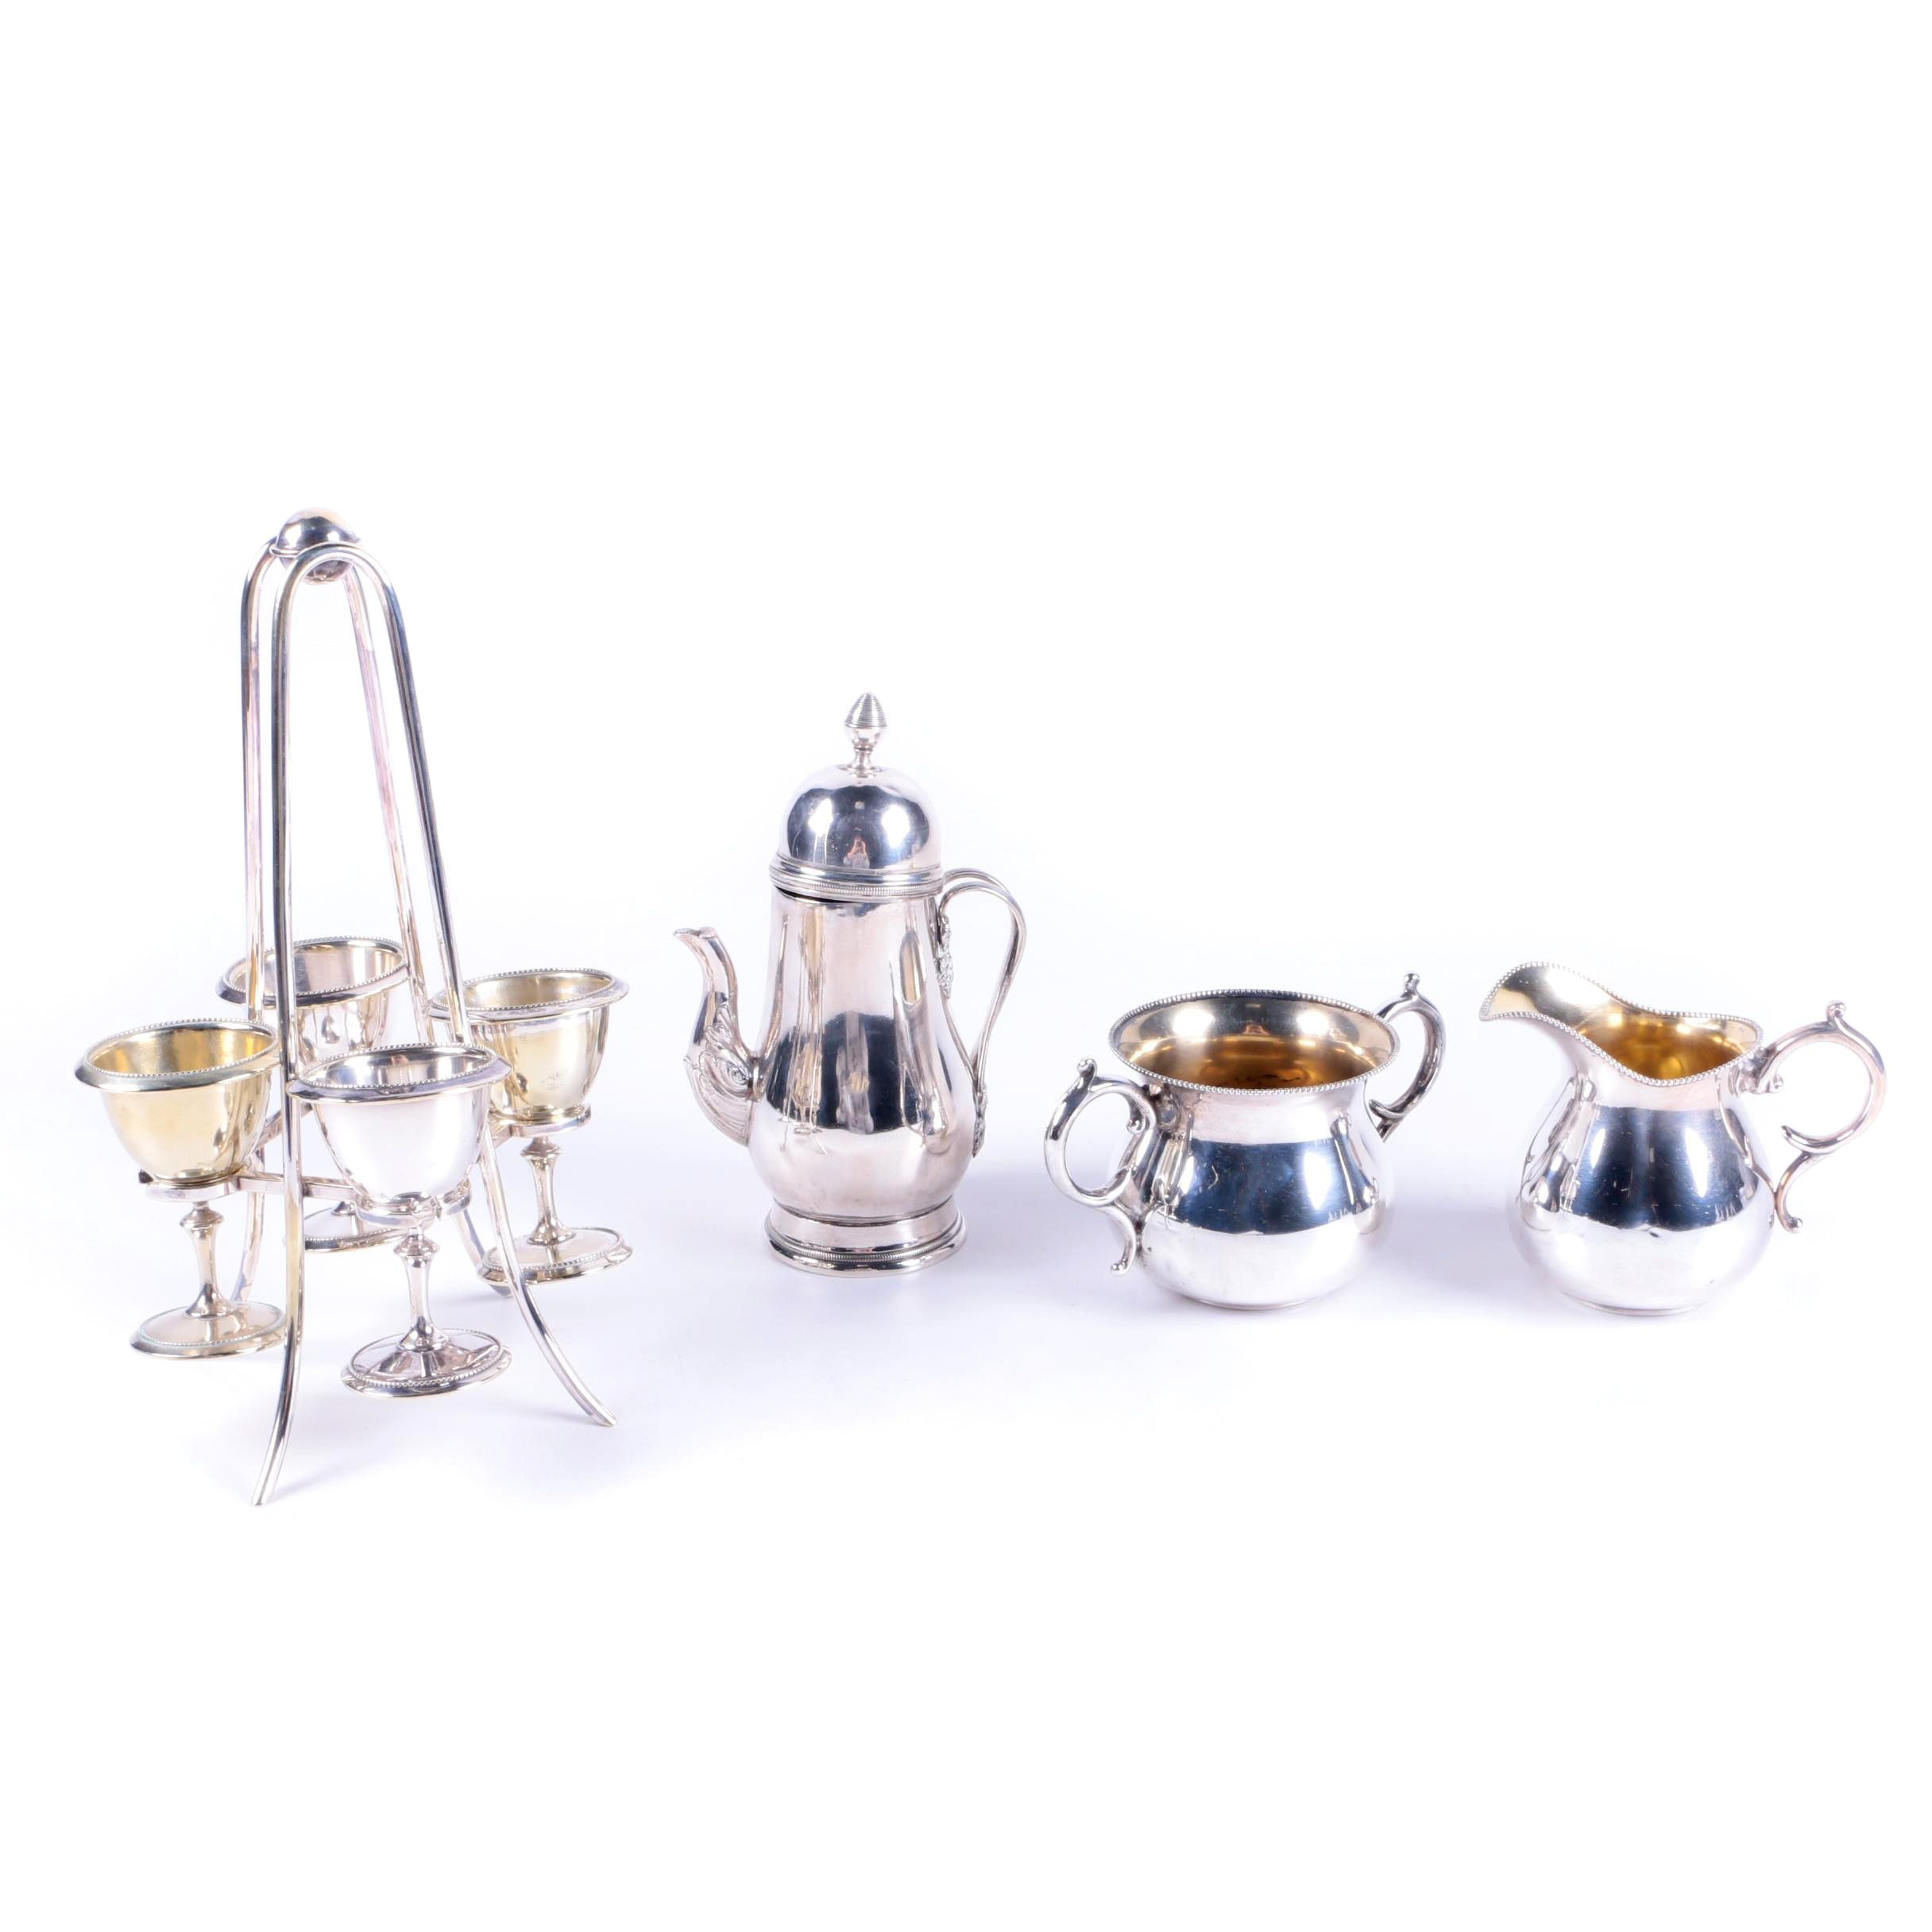 Adelphi Sterling Silver Creamer and Sugar Bowls Set and Other Tableware